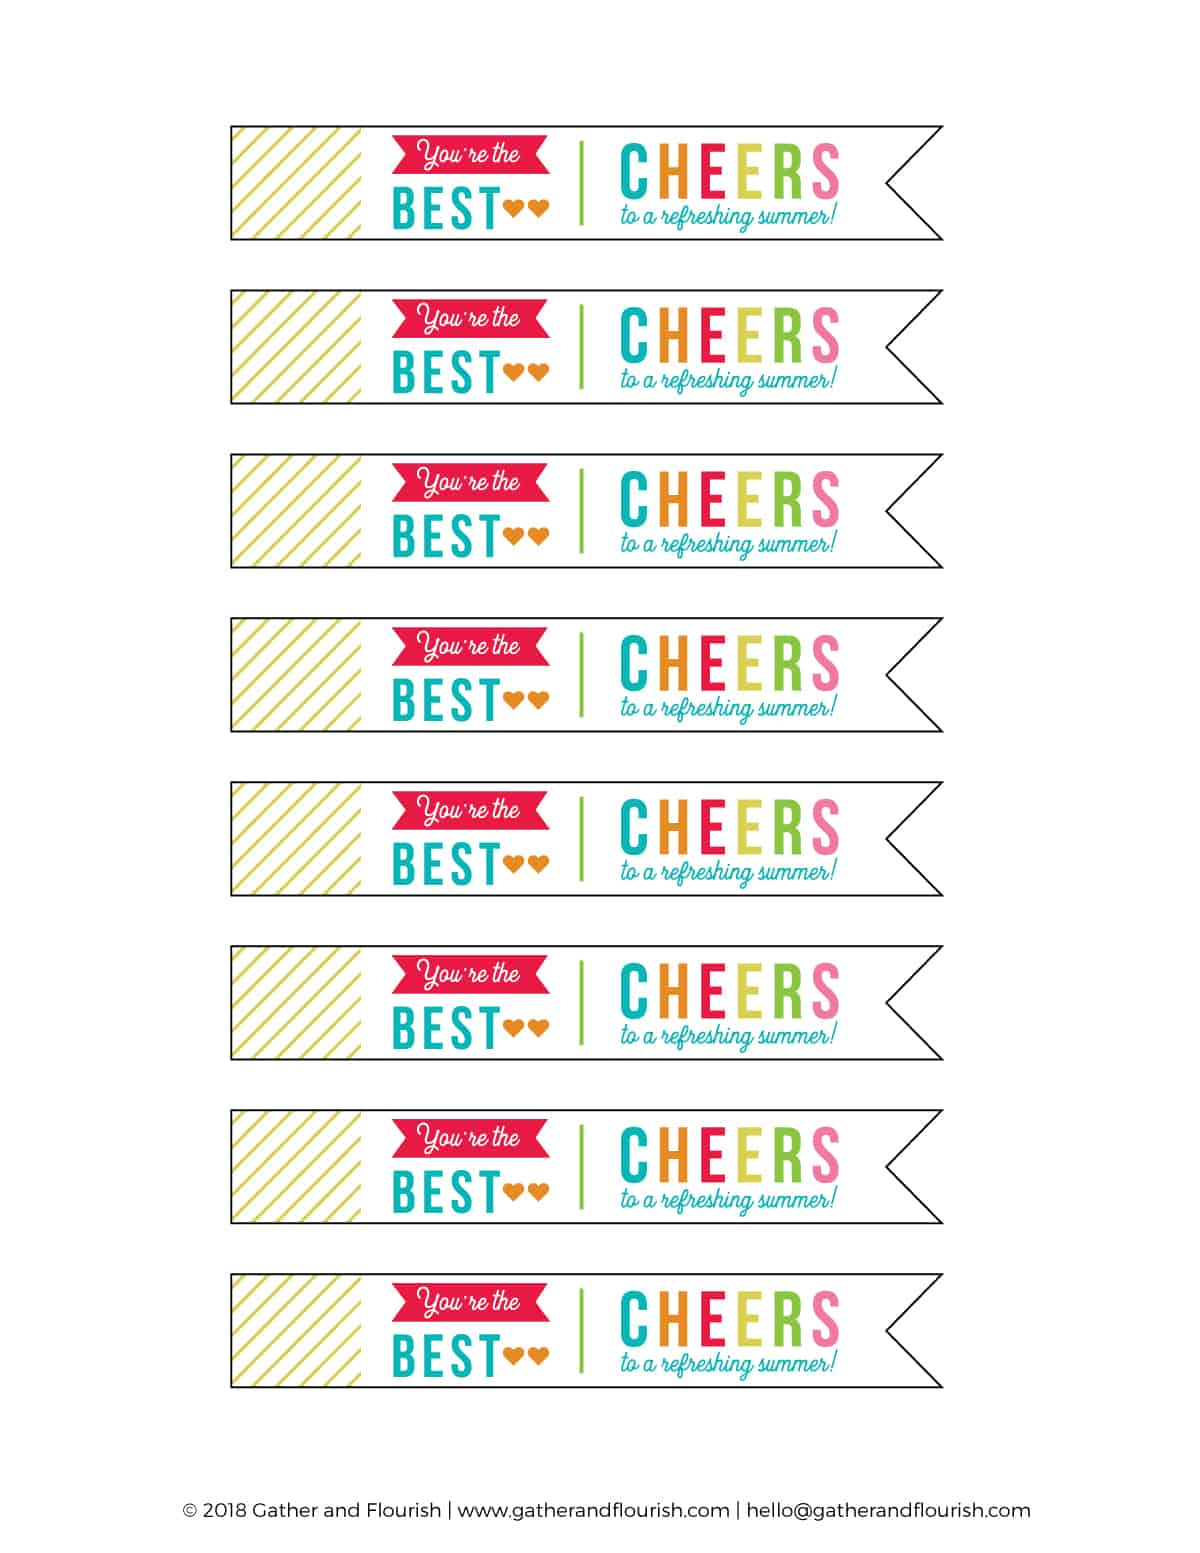 Teacher Appreciation Gift with FREE printable gift tags! End of the school year teacher gift idea! Free printable gift tag!